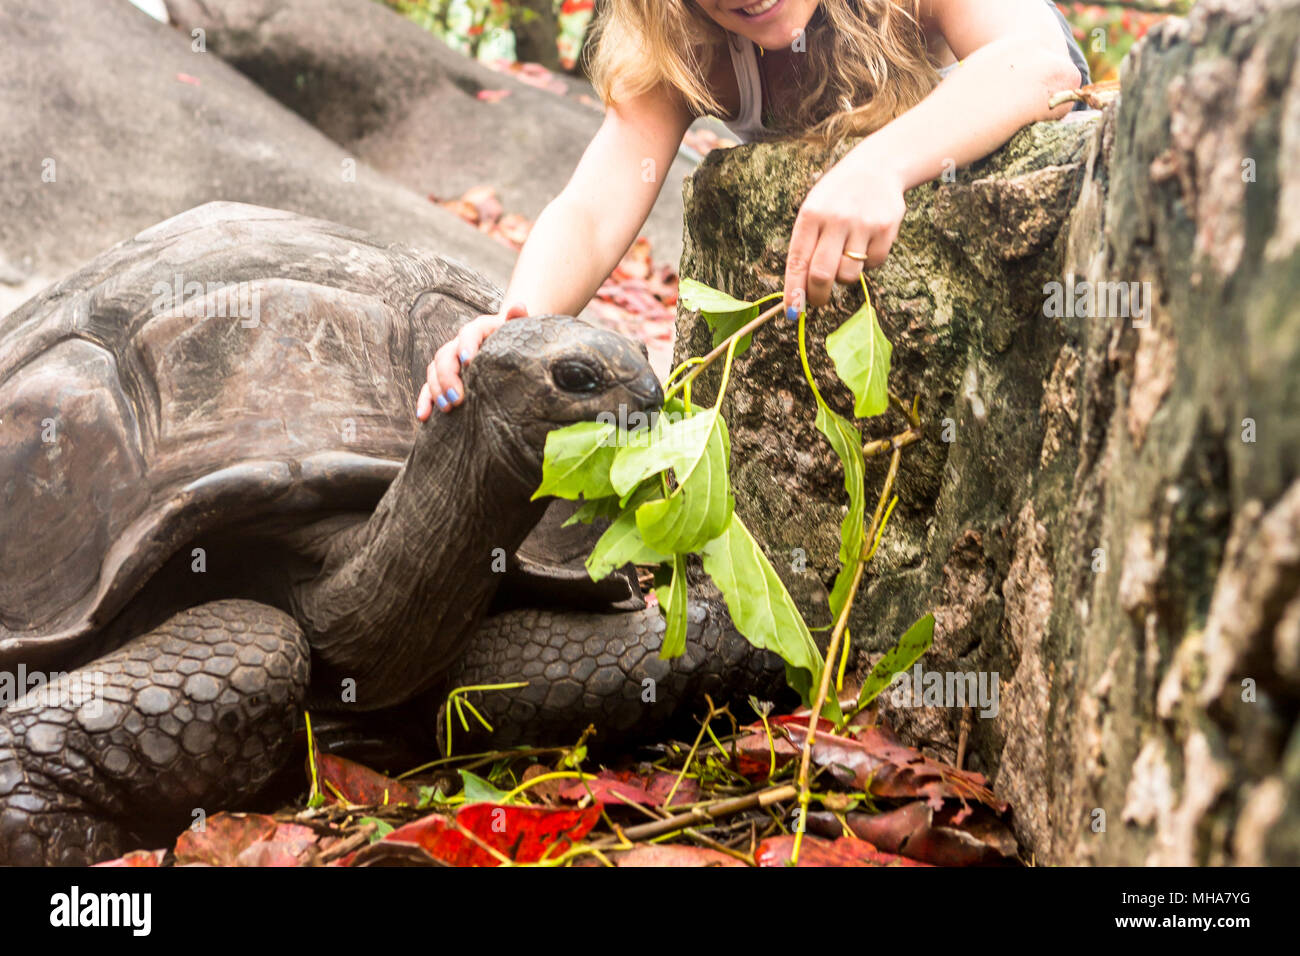 Giant turtles in Island Seychelles. - Stock Image